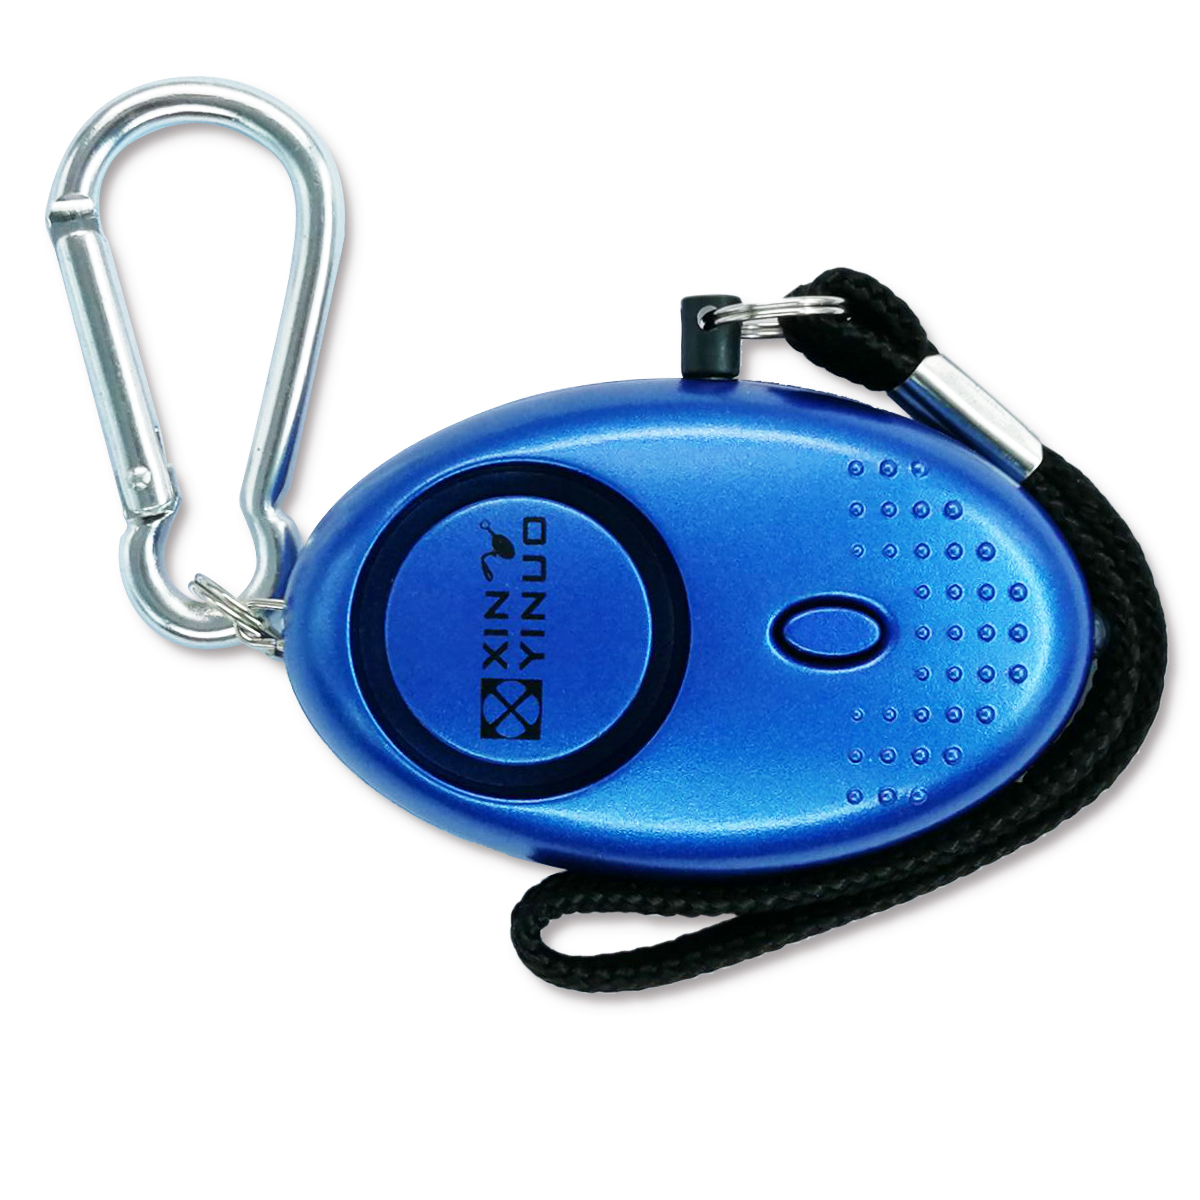 Wholesale OEM 140dB SOS personal attack safety security keyring keychain alarm personal safety